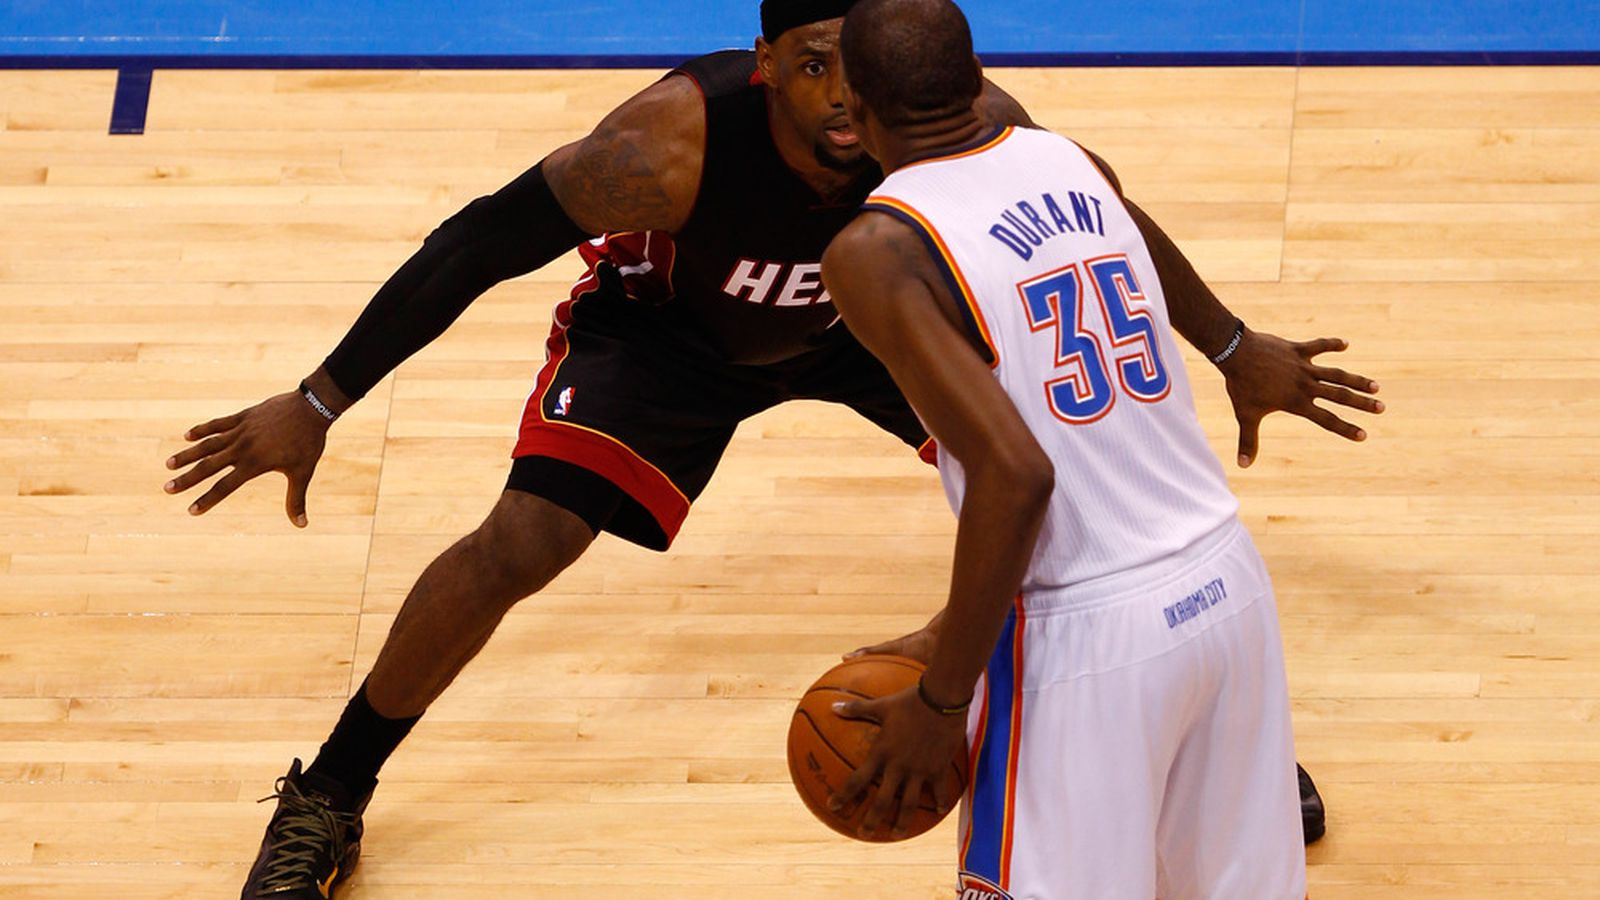 NBA Finals, Heat Vs. Thunder Game 3: Game Time, TV Info And Game Thread - Indy Cornrows